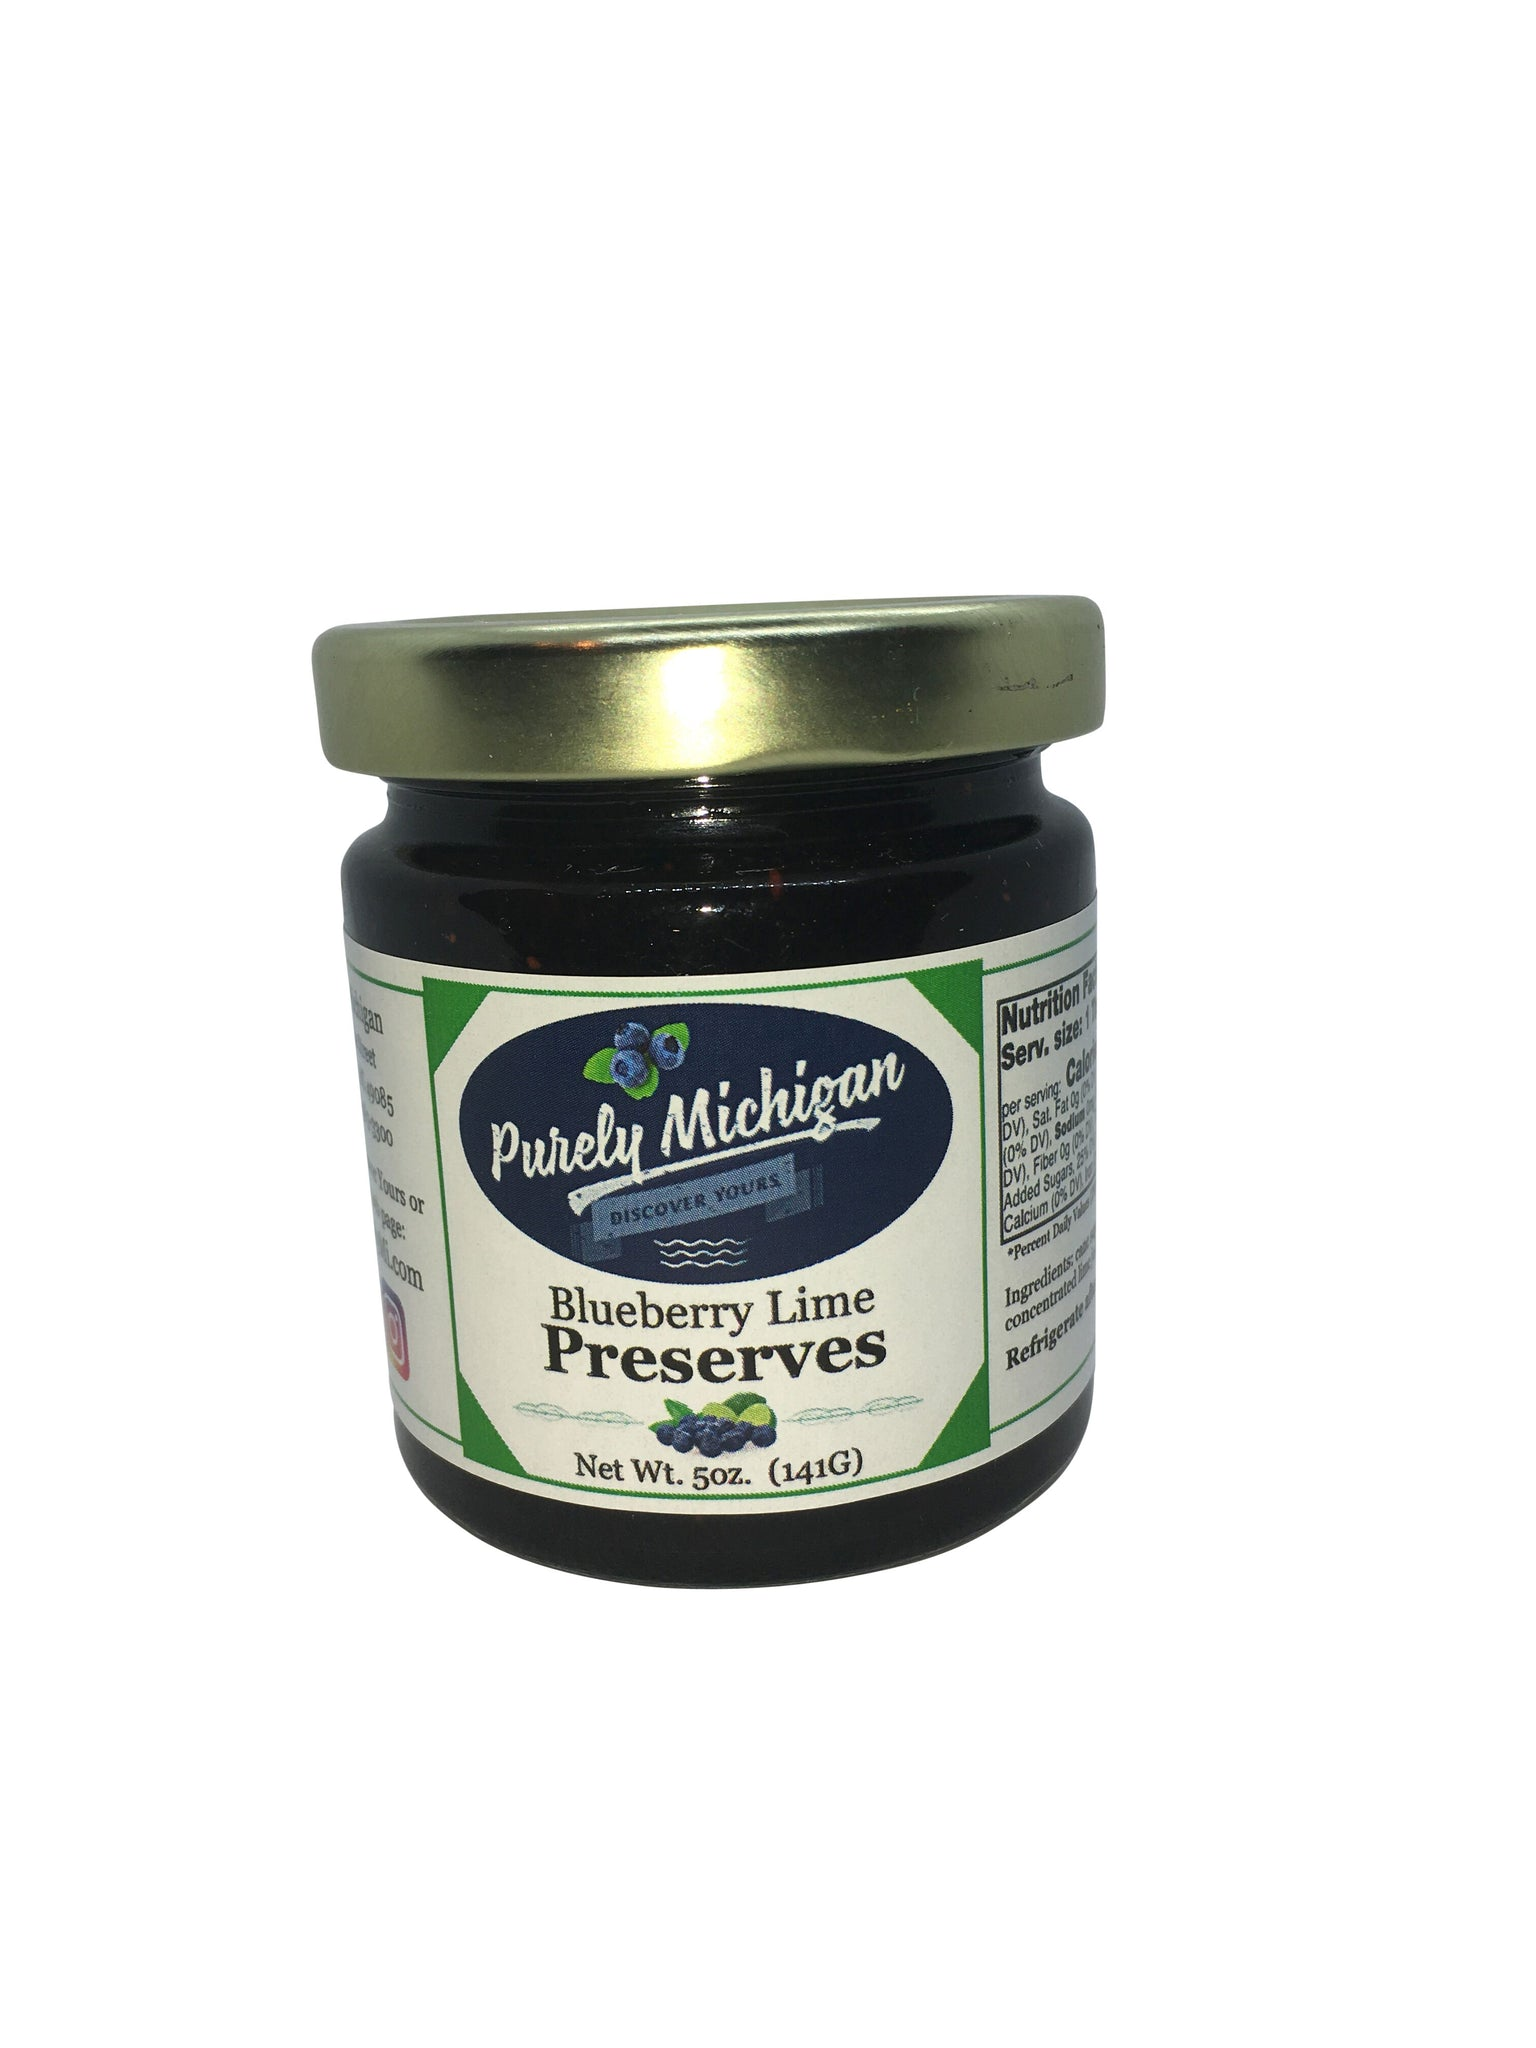 Blueberry Lime Preserves - 5oz